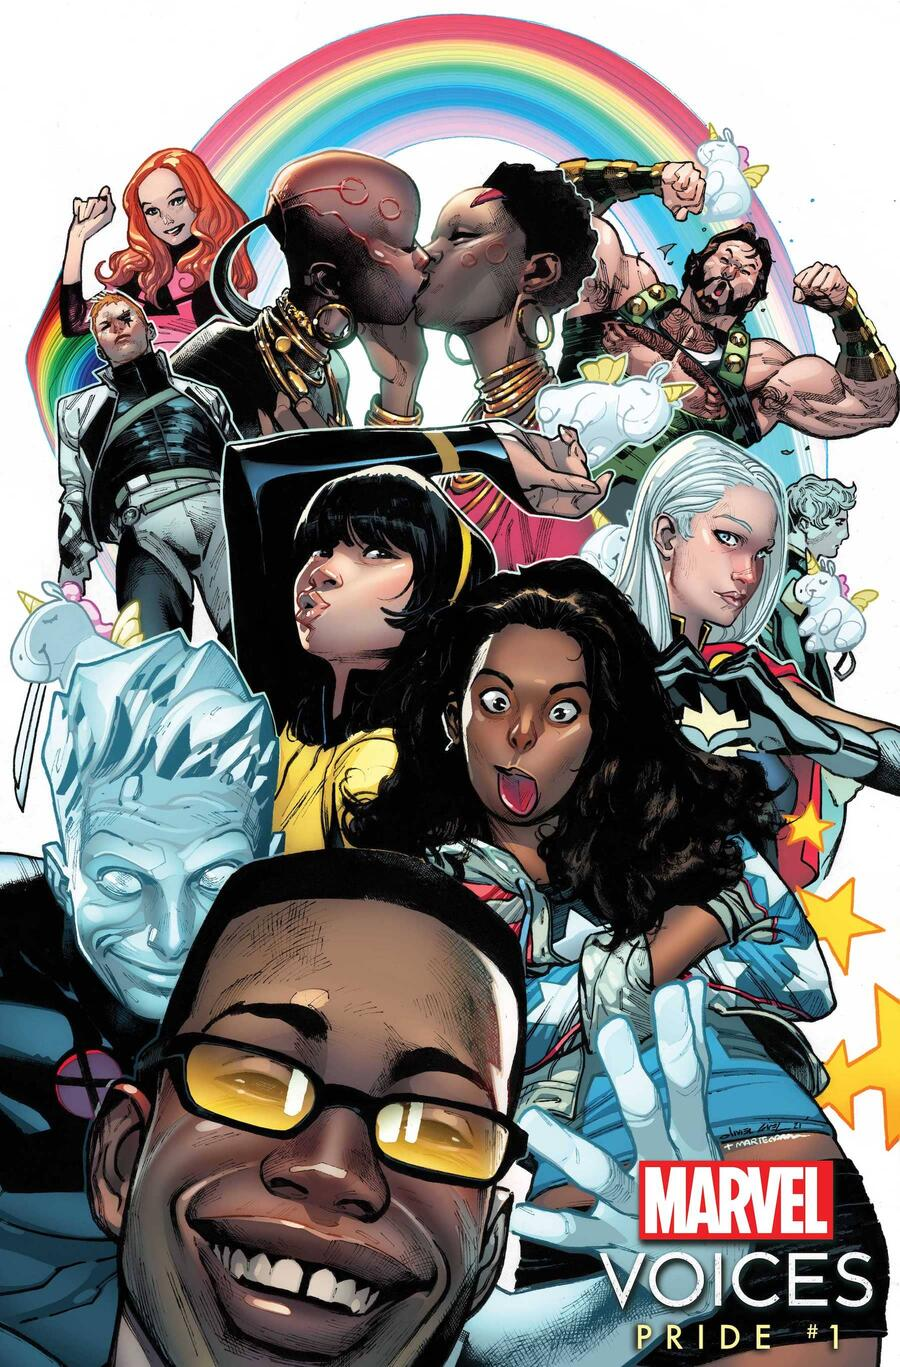 MARVEL'S VOICES: PRIDE #1 variant by Olivier Coipel